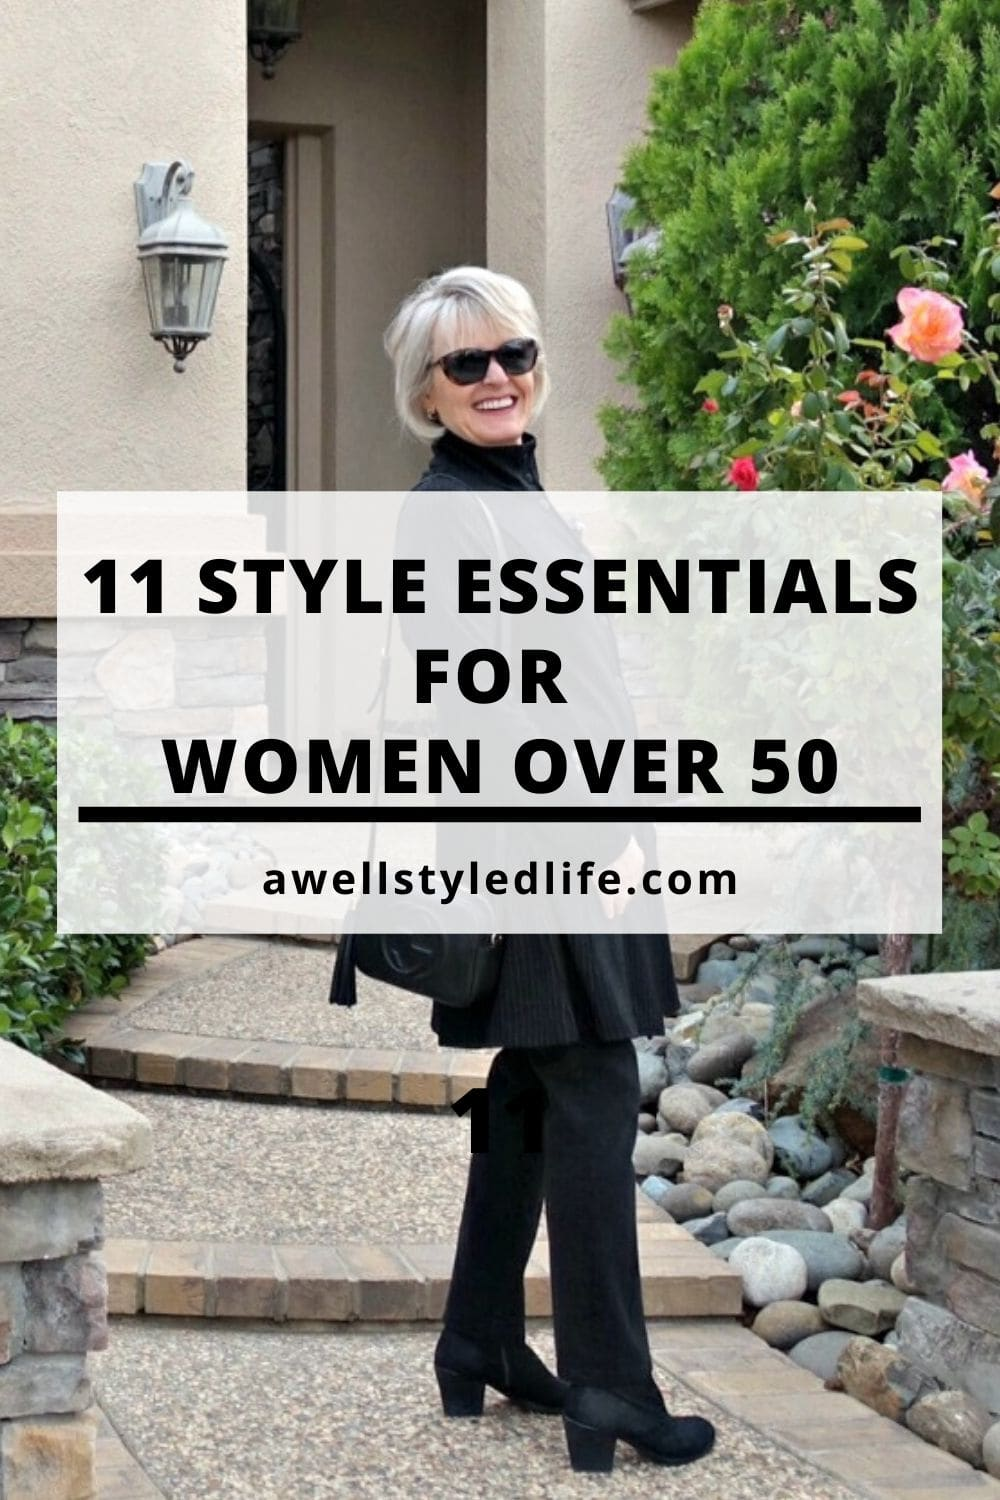 11 Style Essentials for Women Over 50